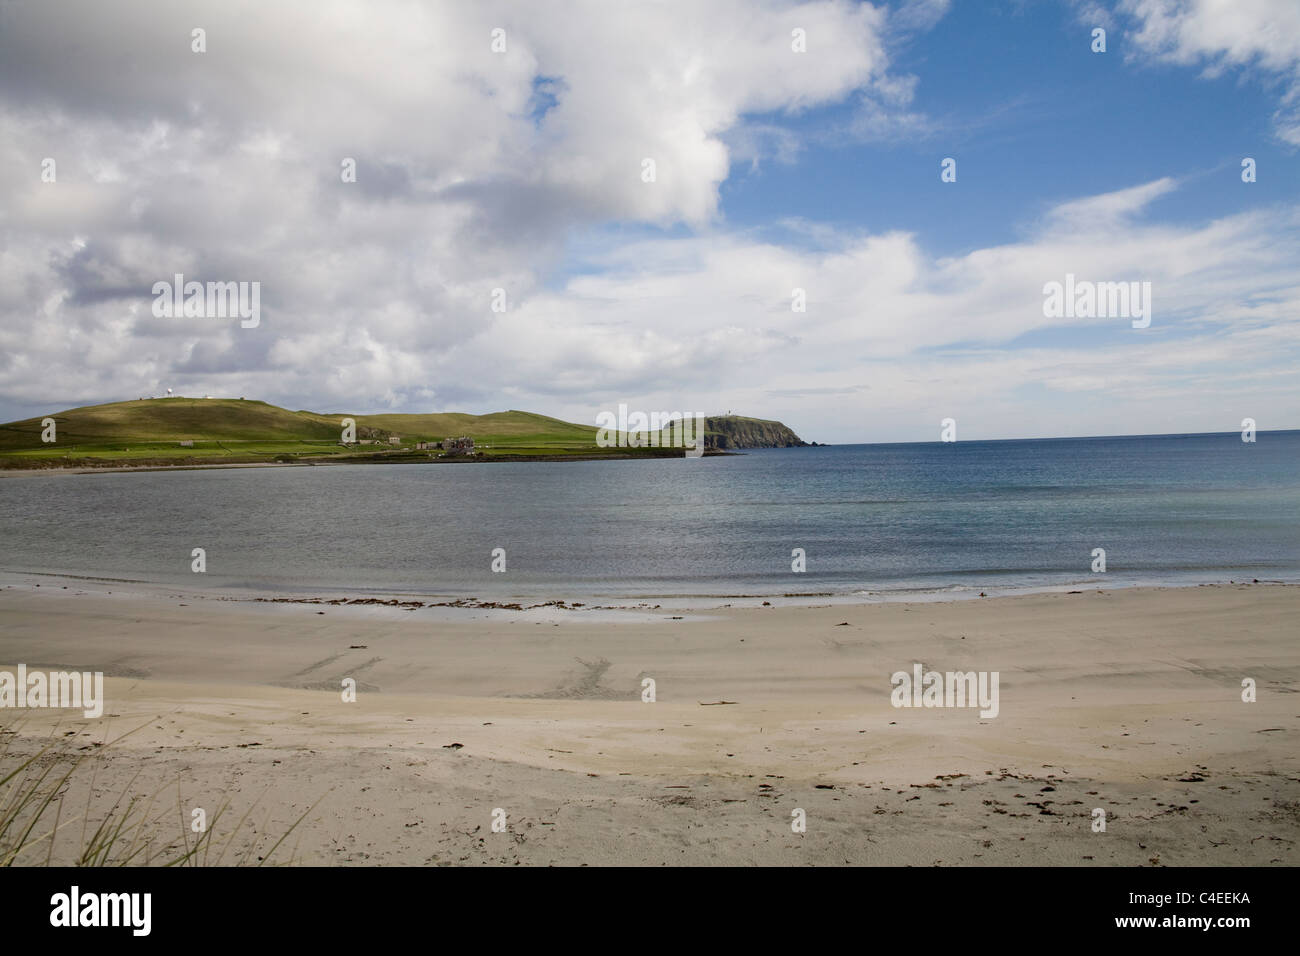 Shetland Islands Scotland May West Voe Beach looking towards Sumburgh Head Lighthouse on tip Southern mainland - Stock Image